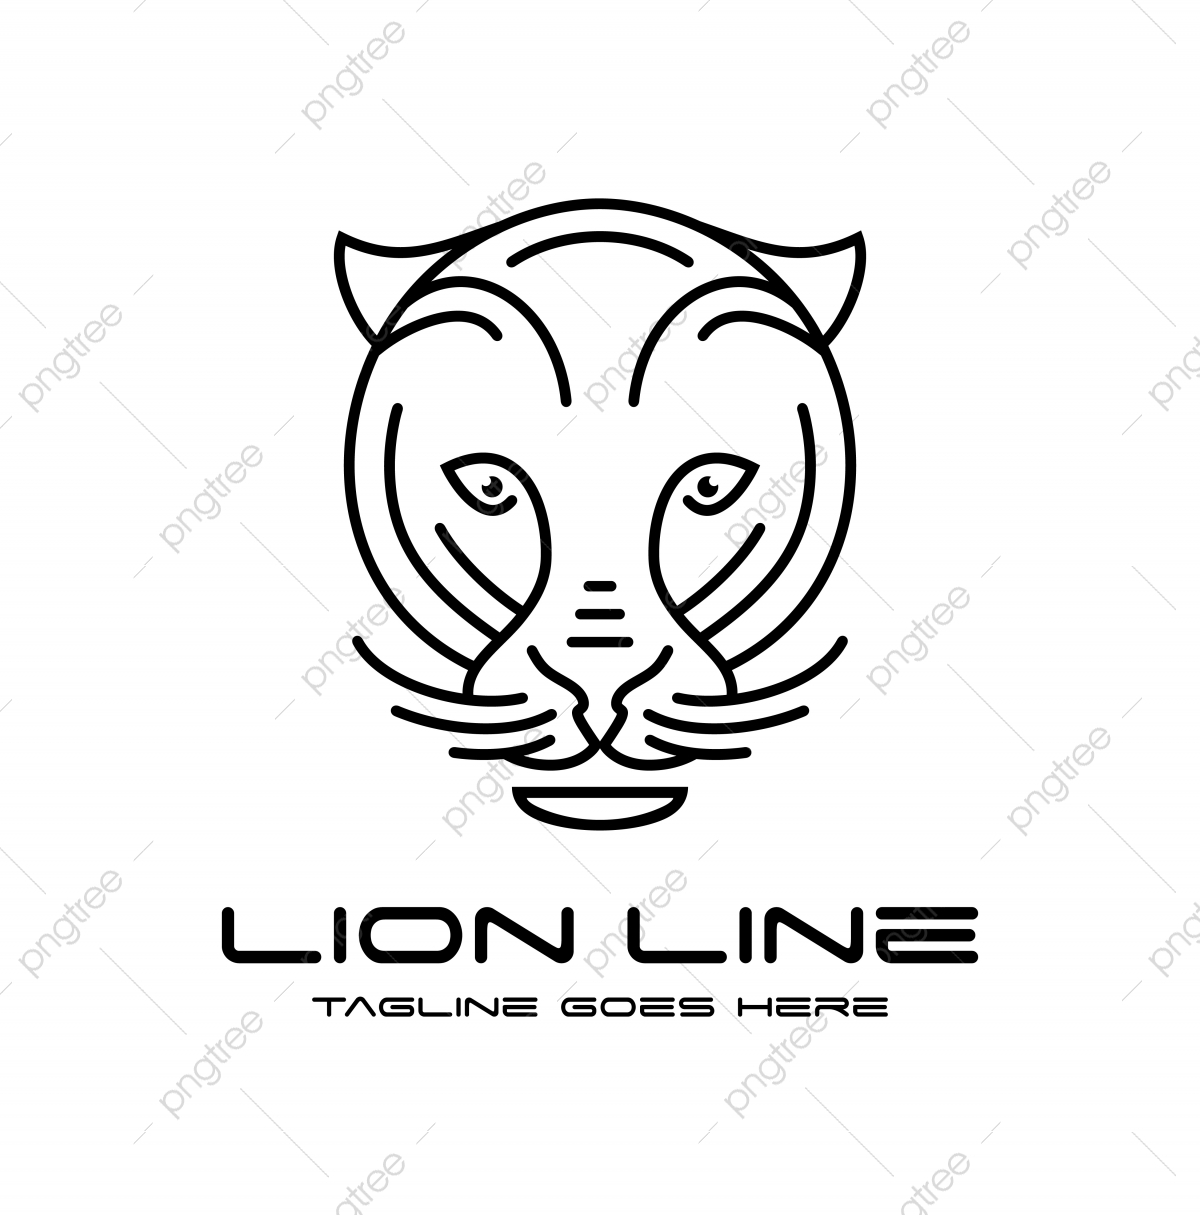 Lion Head Outline Logo Template Download On Pngtree Lion outline machine embroidery design by ace points. lion head outline logo template